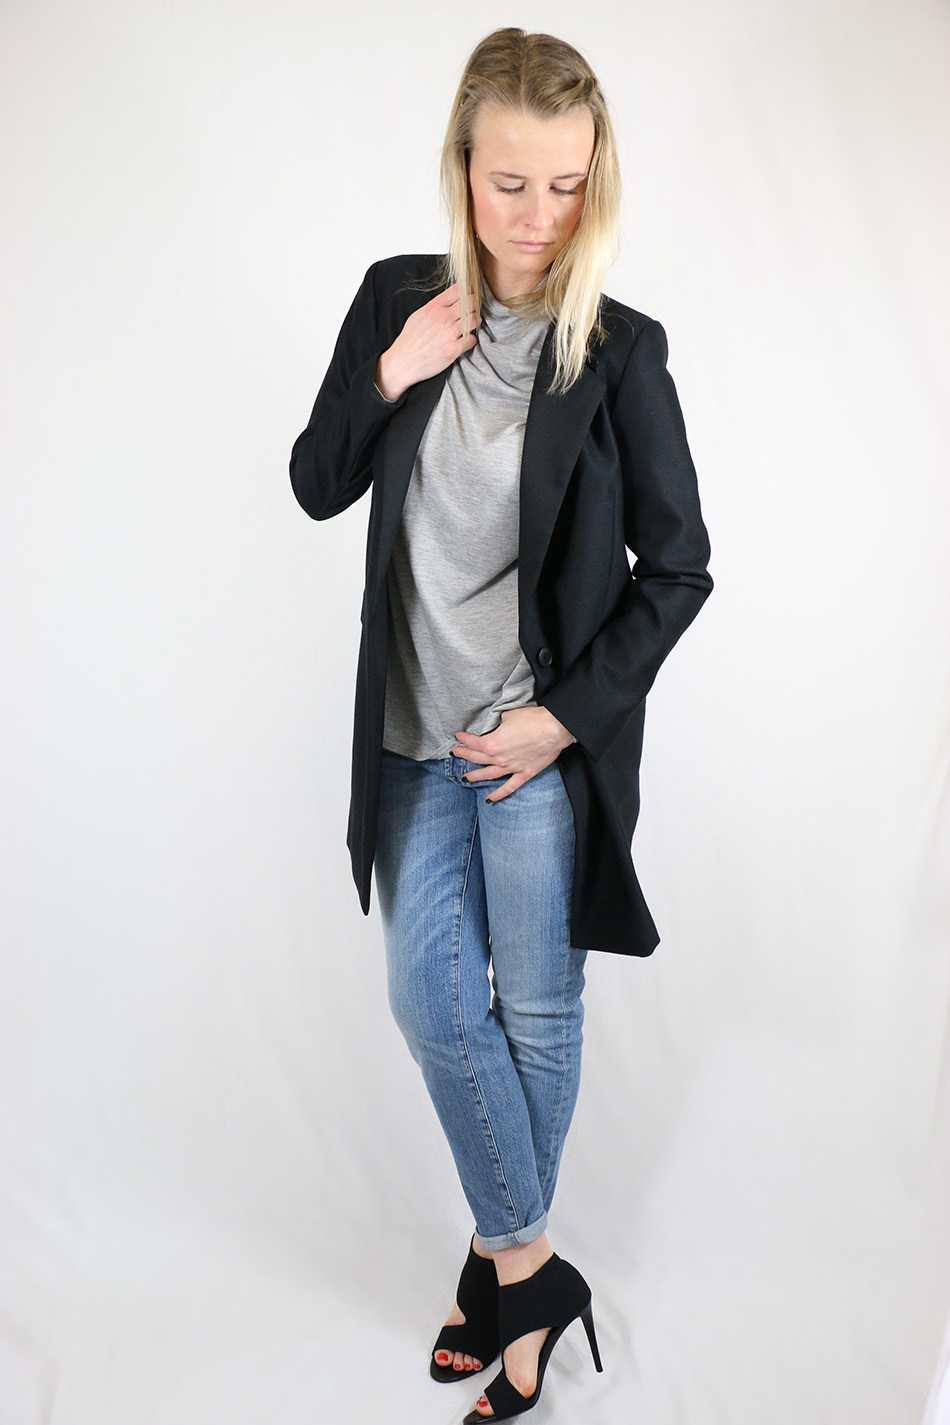 Fringe and Doll BMB Blazer and jeans IMG_1550edit